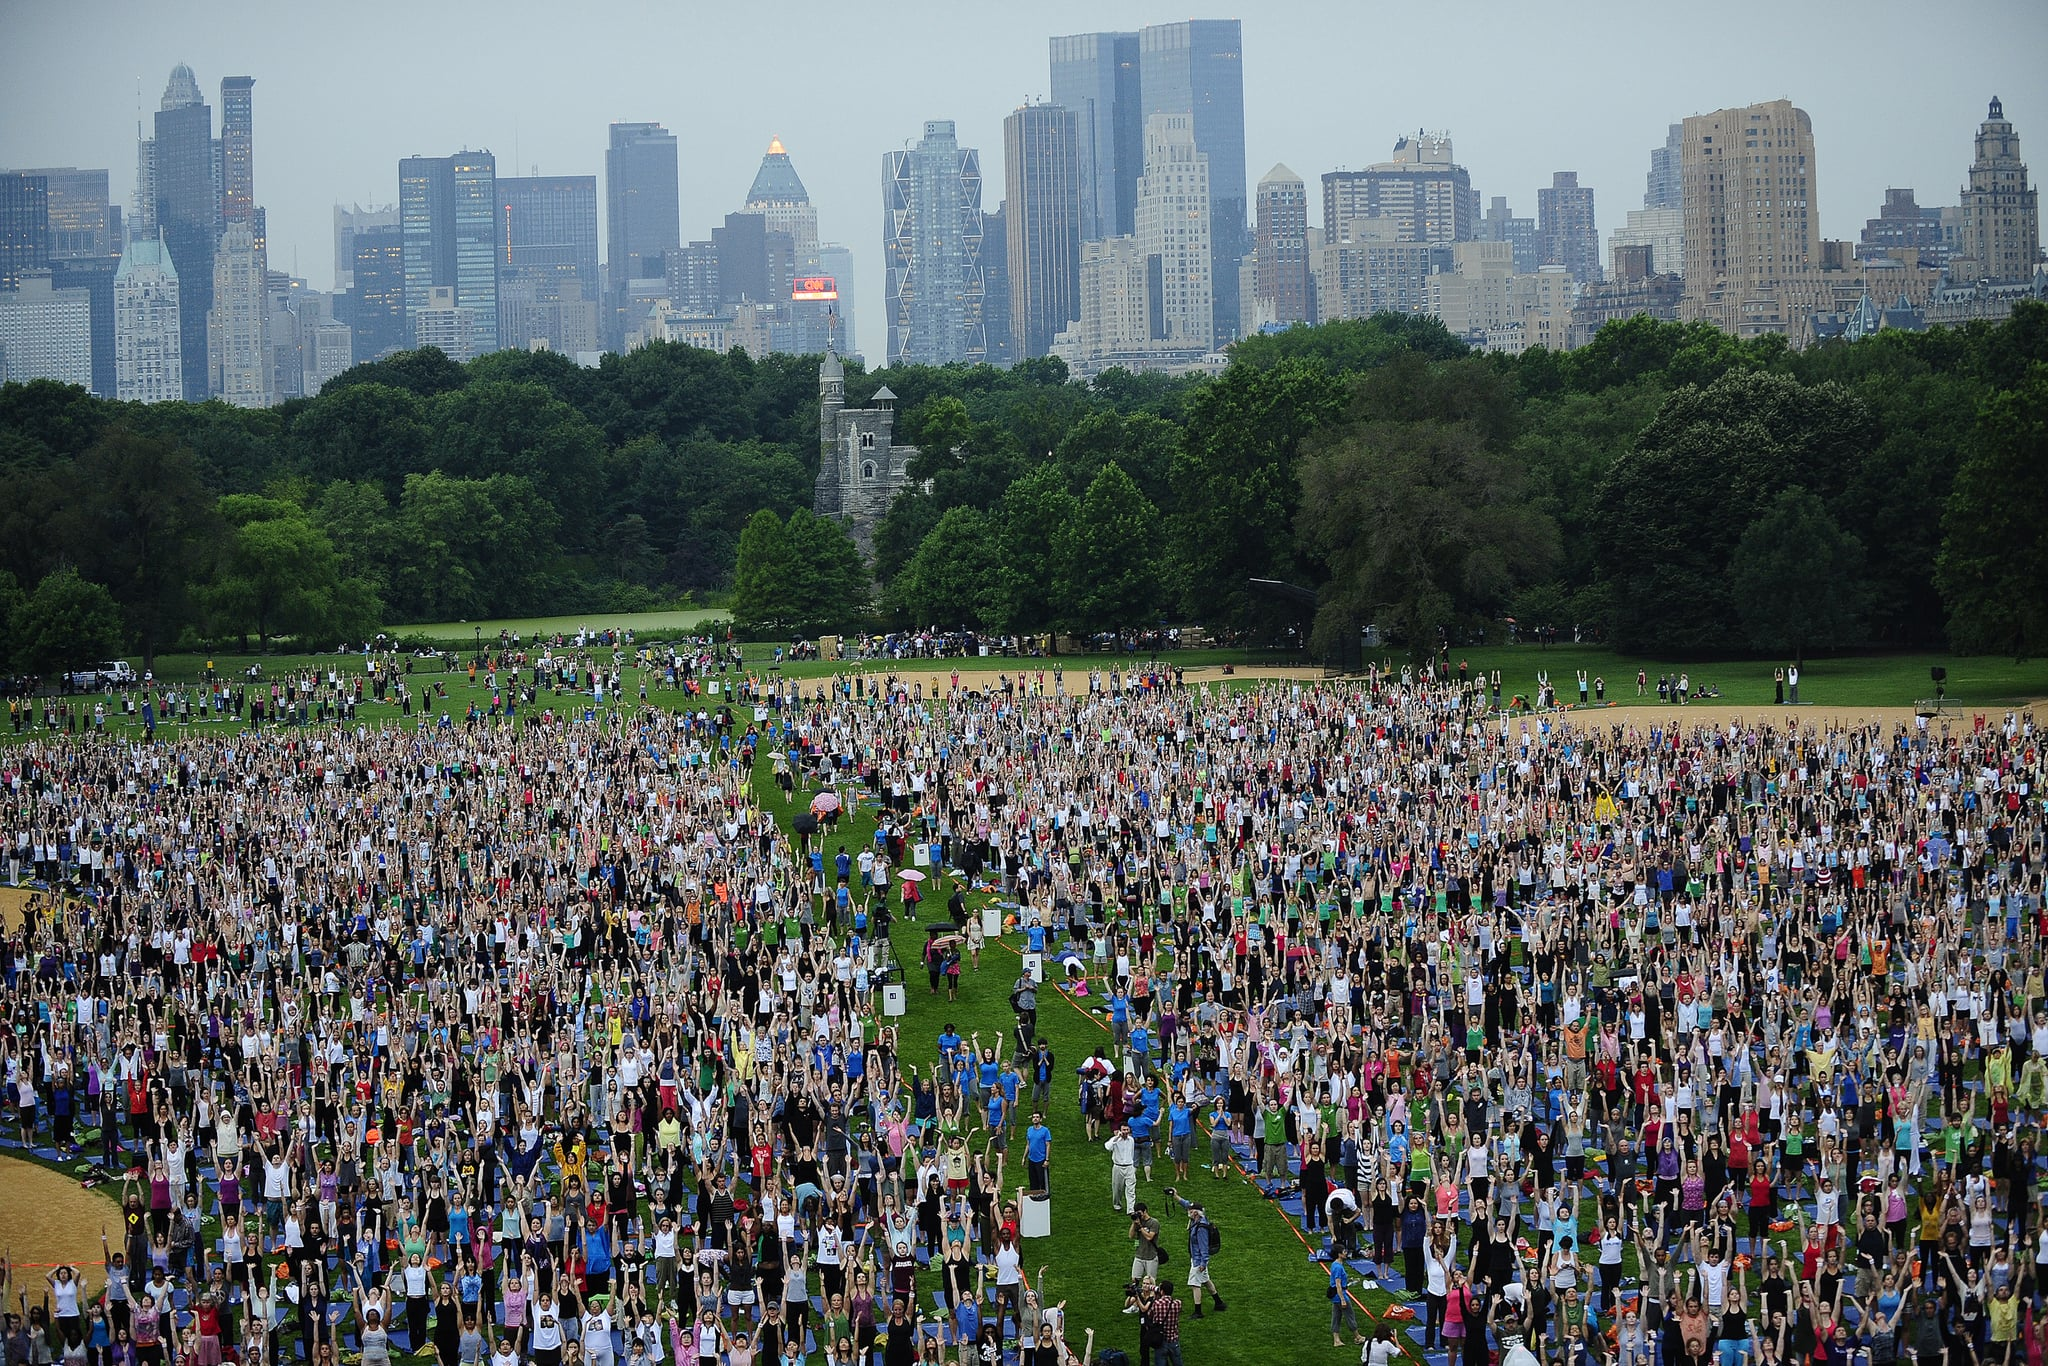 pictures from central park massive yoga session in new york city popsugar love sex. Black Bedroom Furniture Sets. Home Design Ideas